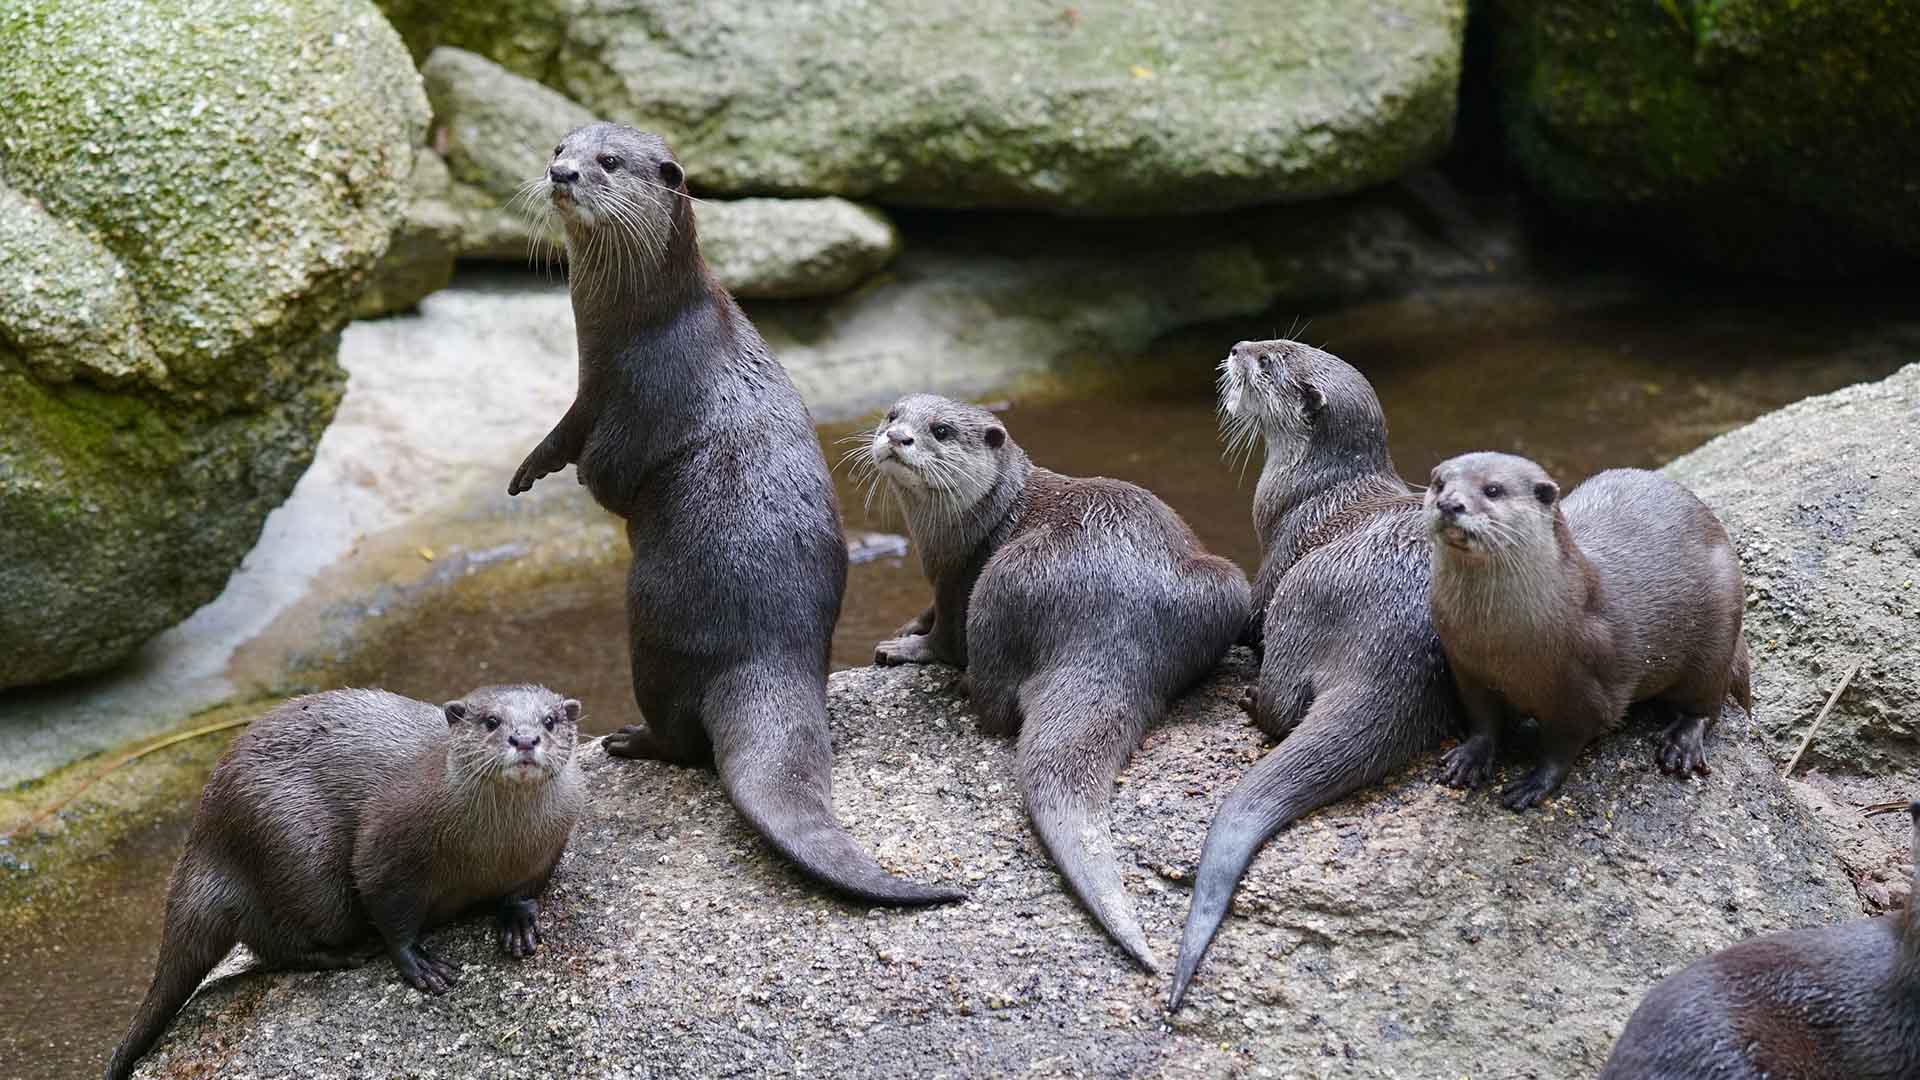 Melbourne Zoo Is Live-Streaming Its Adorable Family of Small-Clawed Otters 24/7 Again